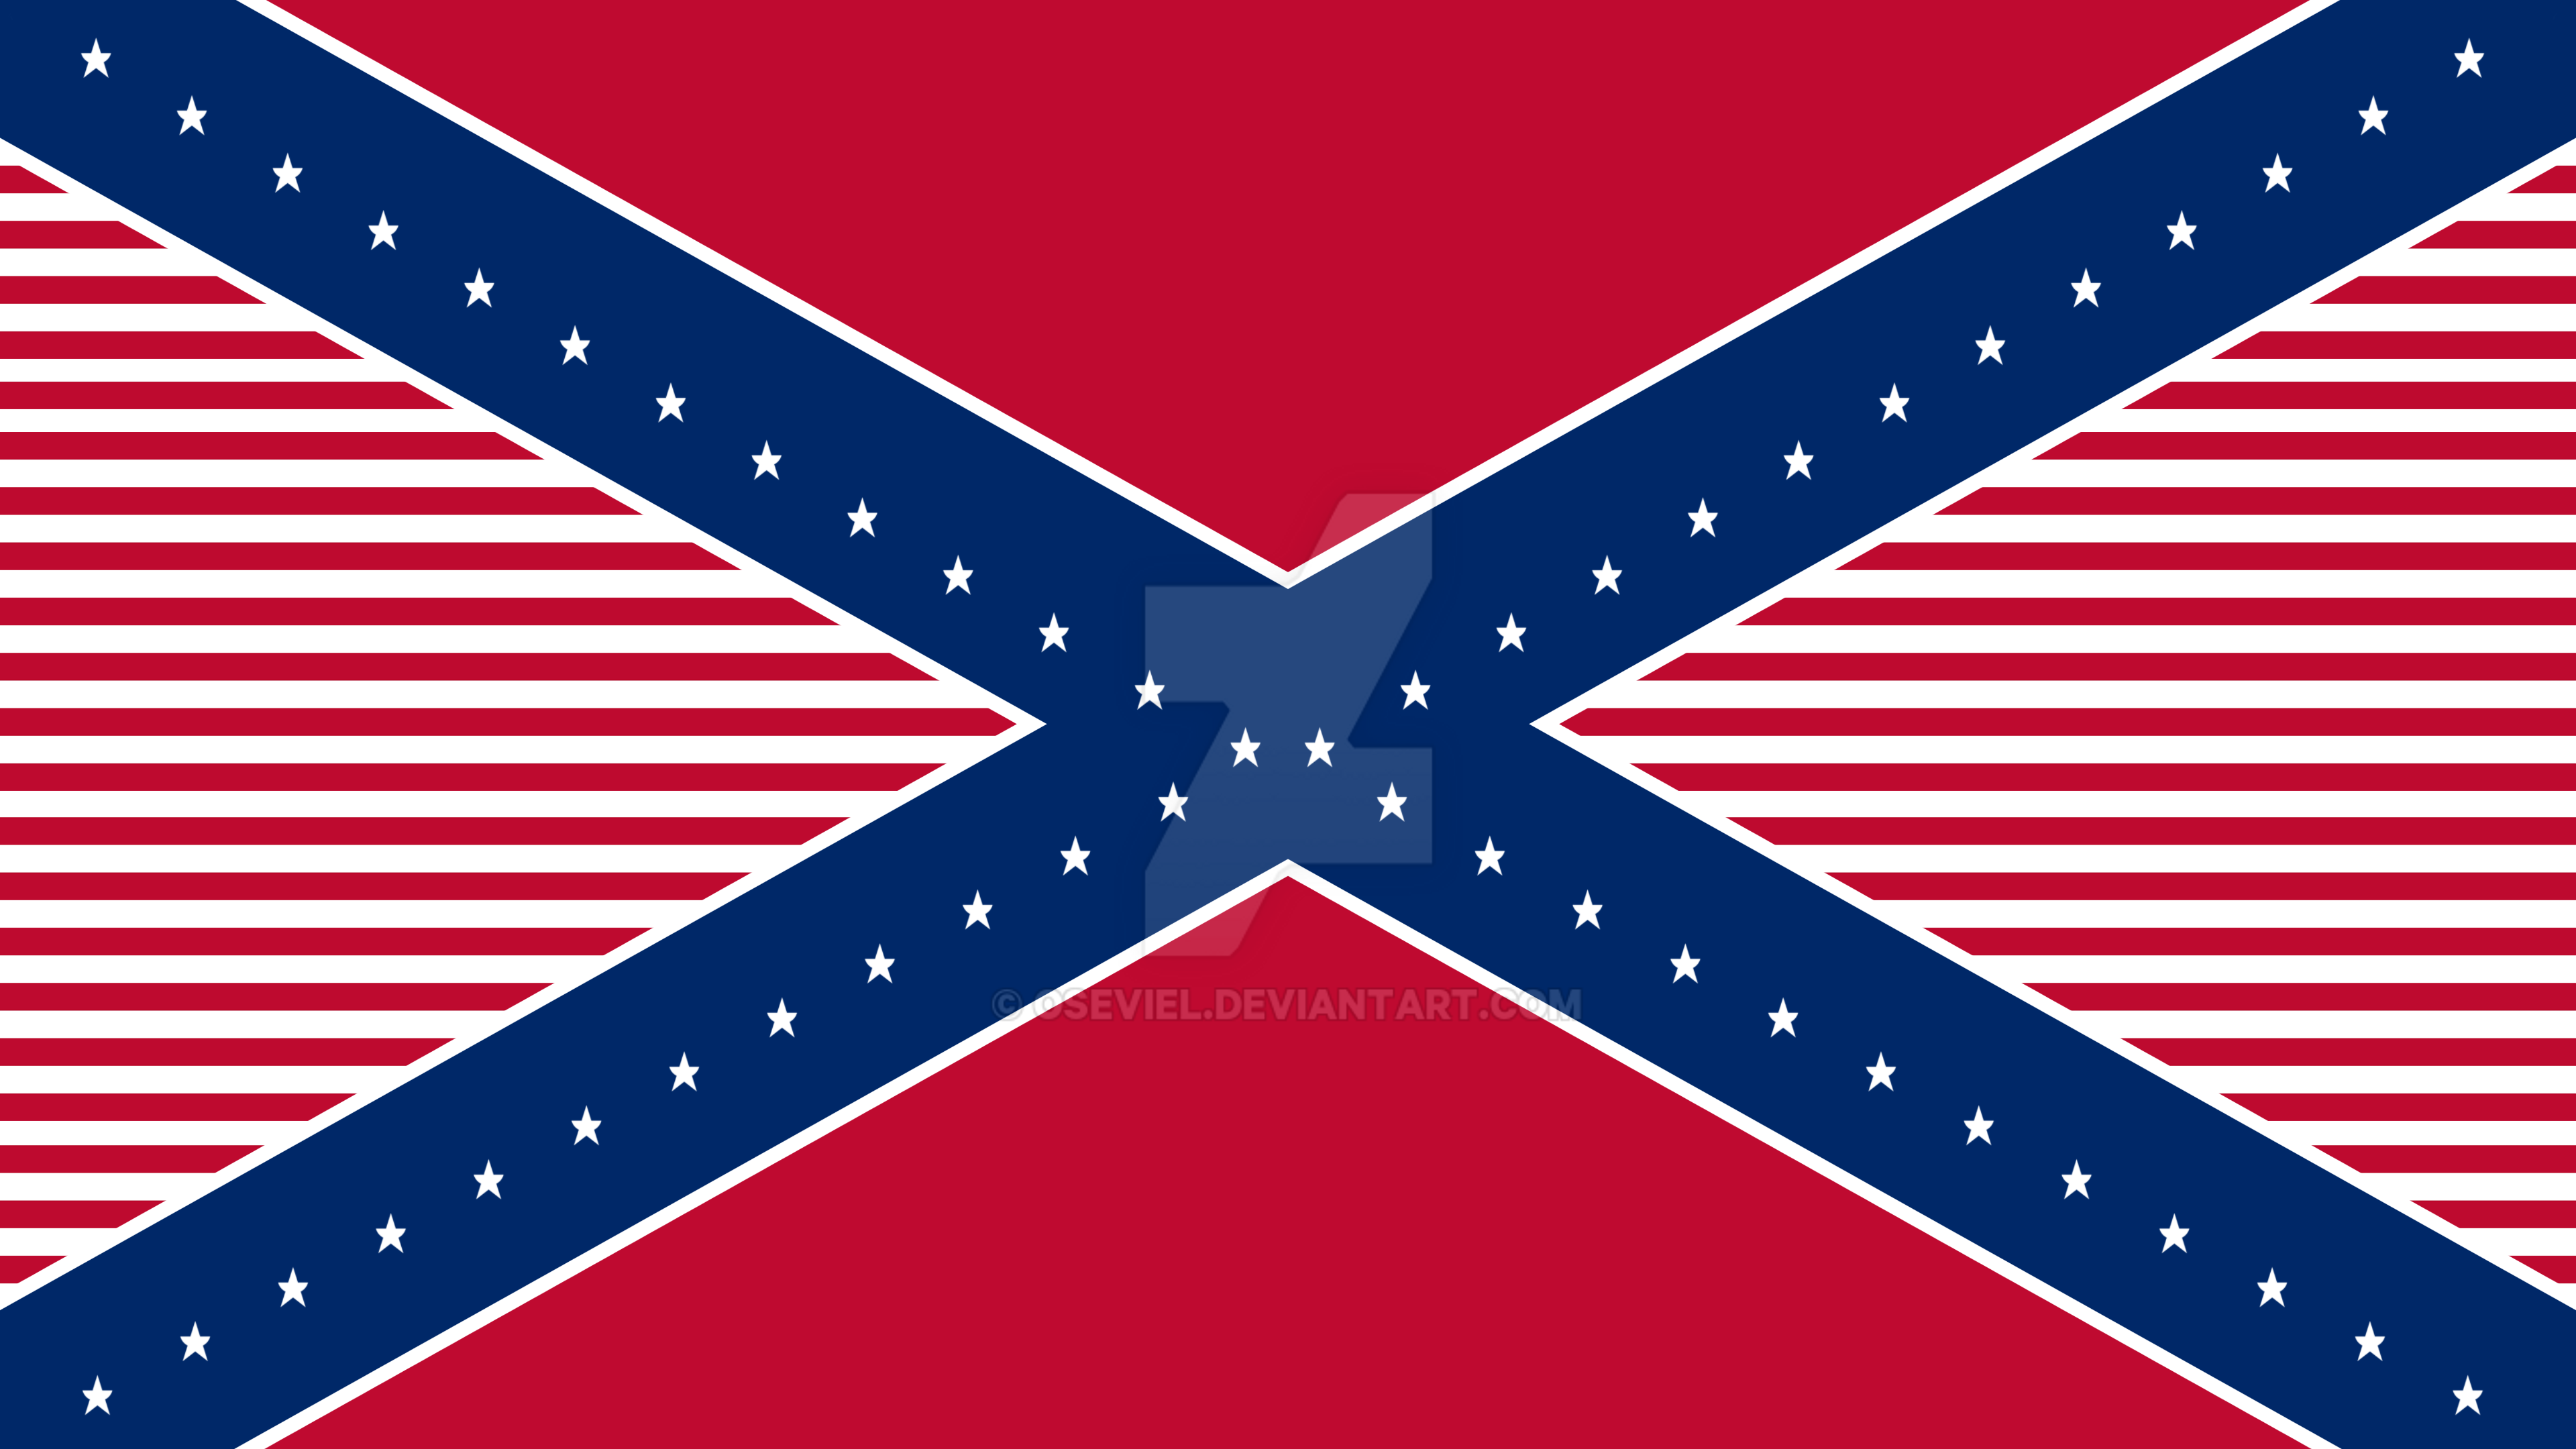 american confederate flag hybrid final by oseviel on deviantart